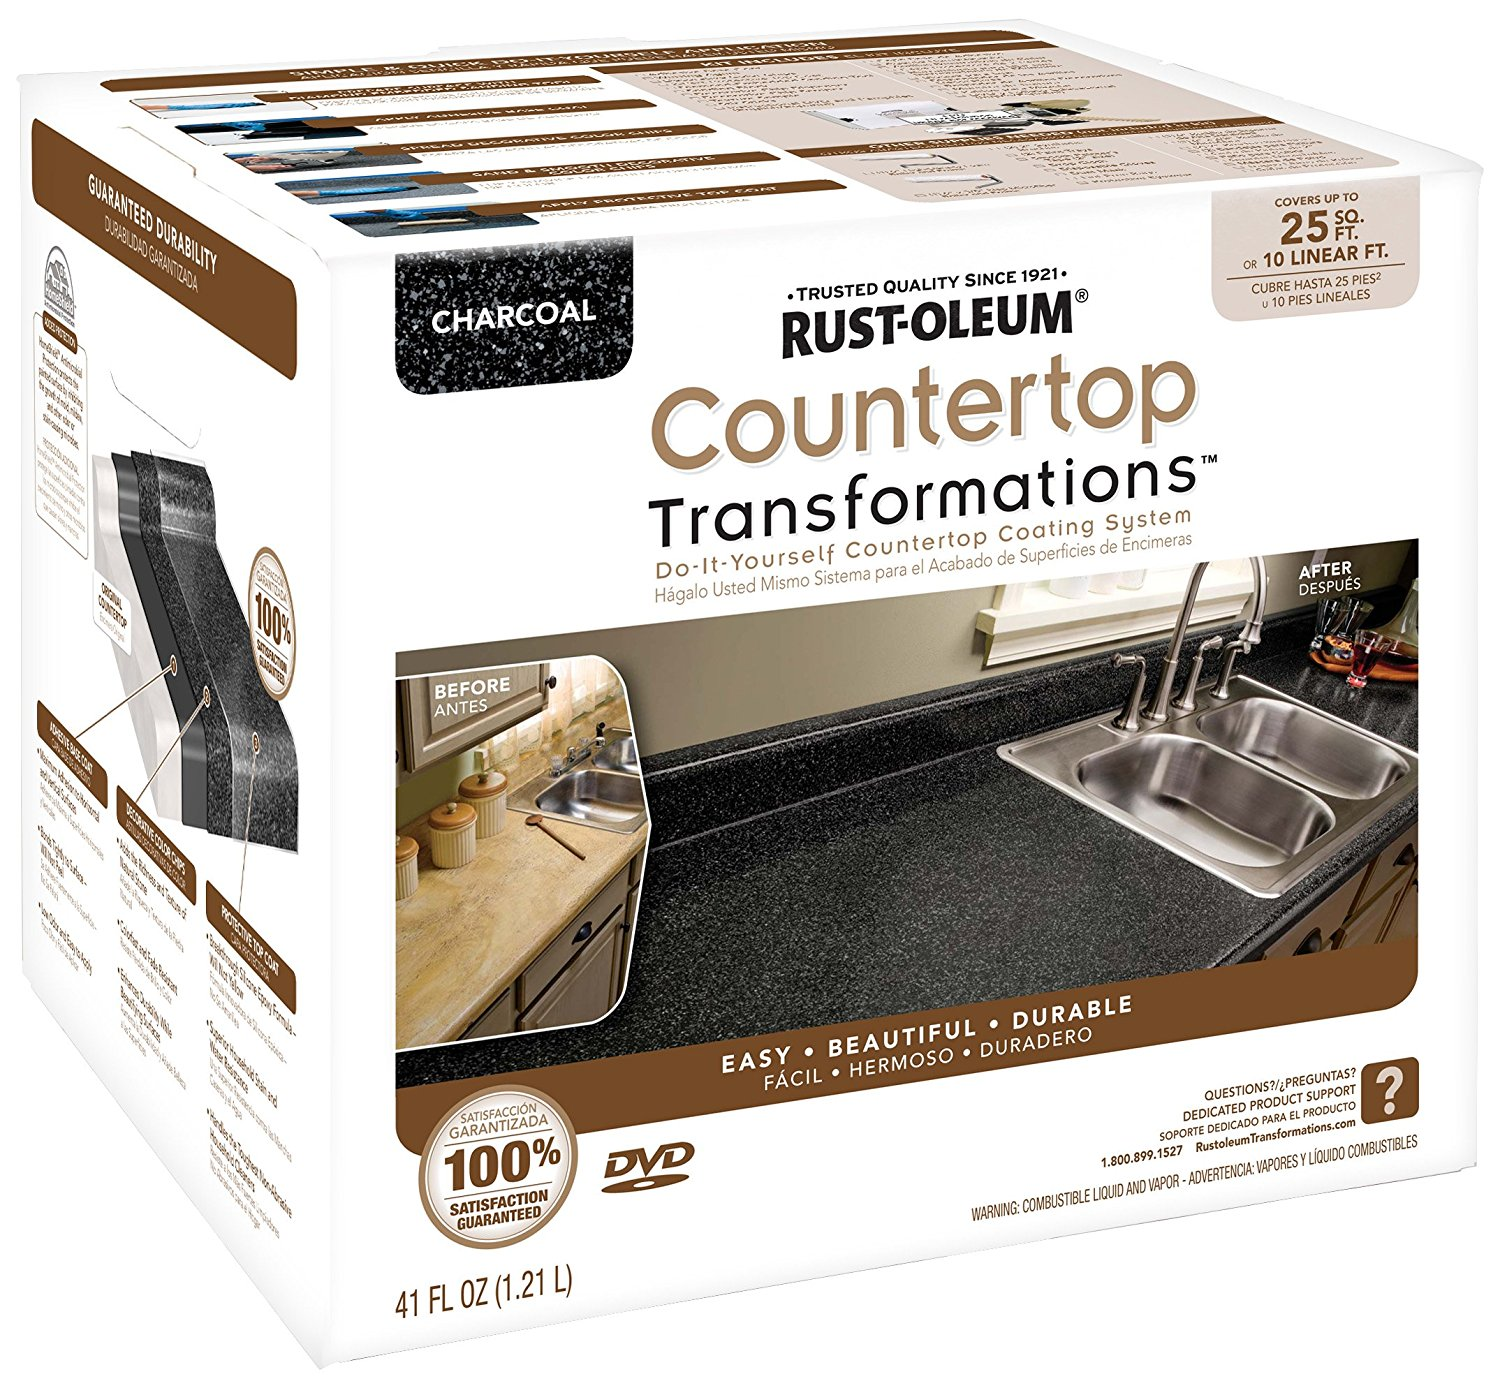 Rust-Oleum 258512 Counter Top Transformations, Small Kit, Charcoal